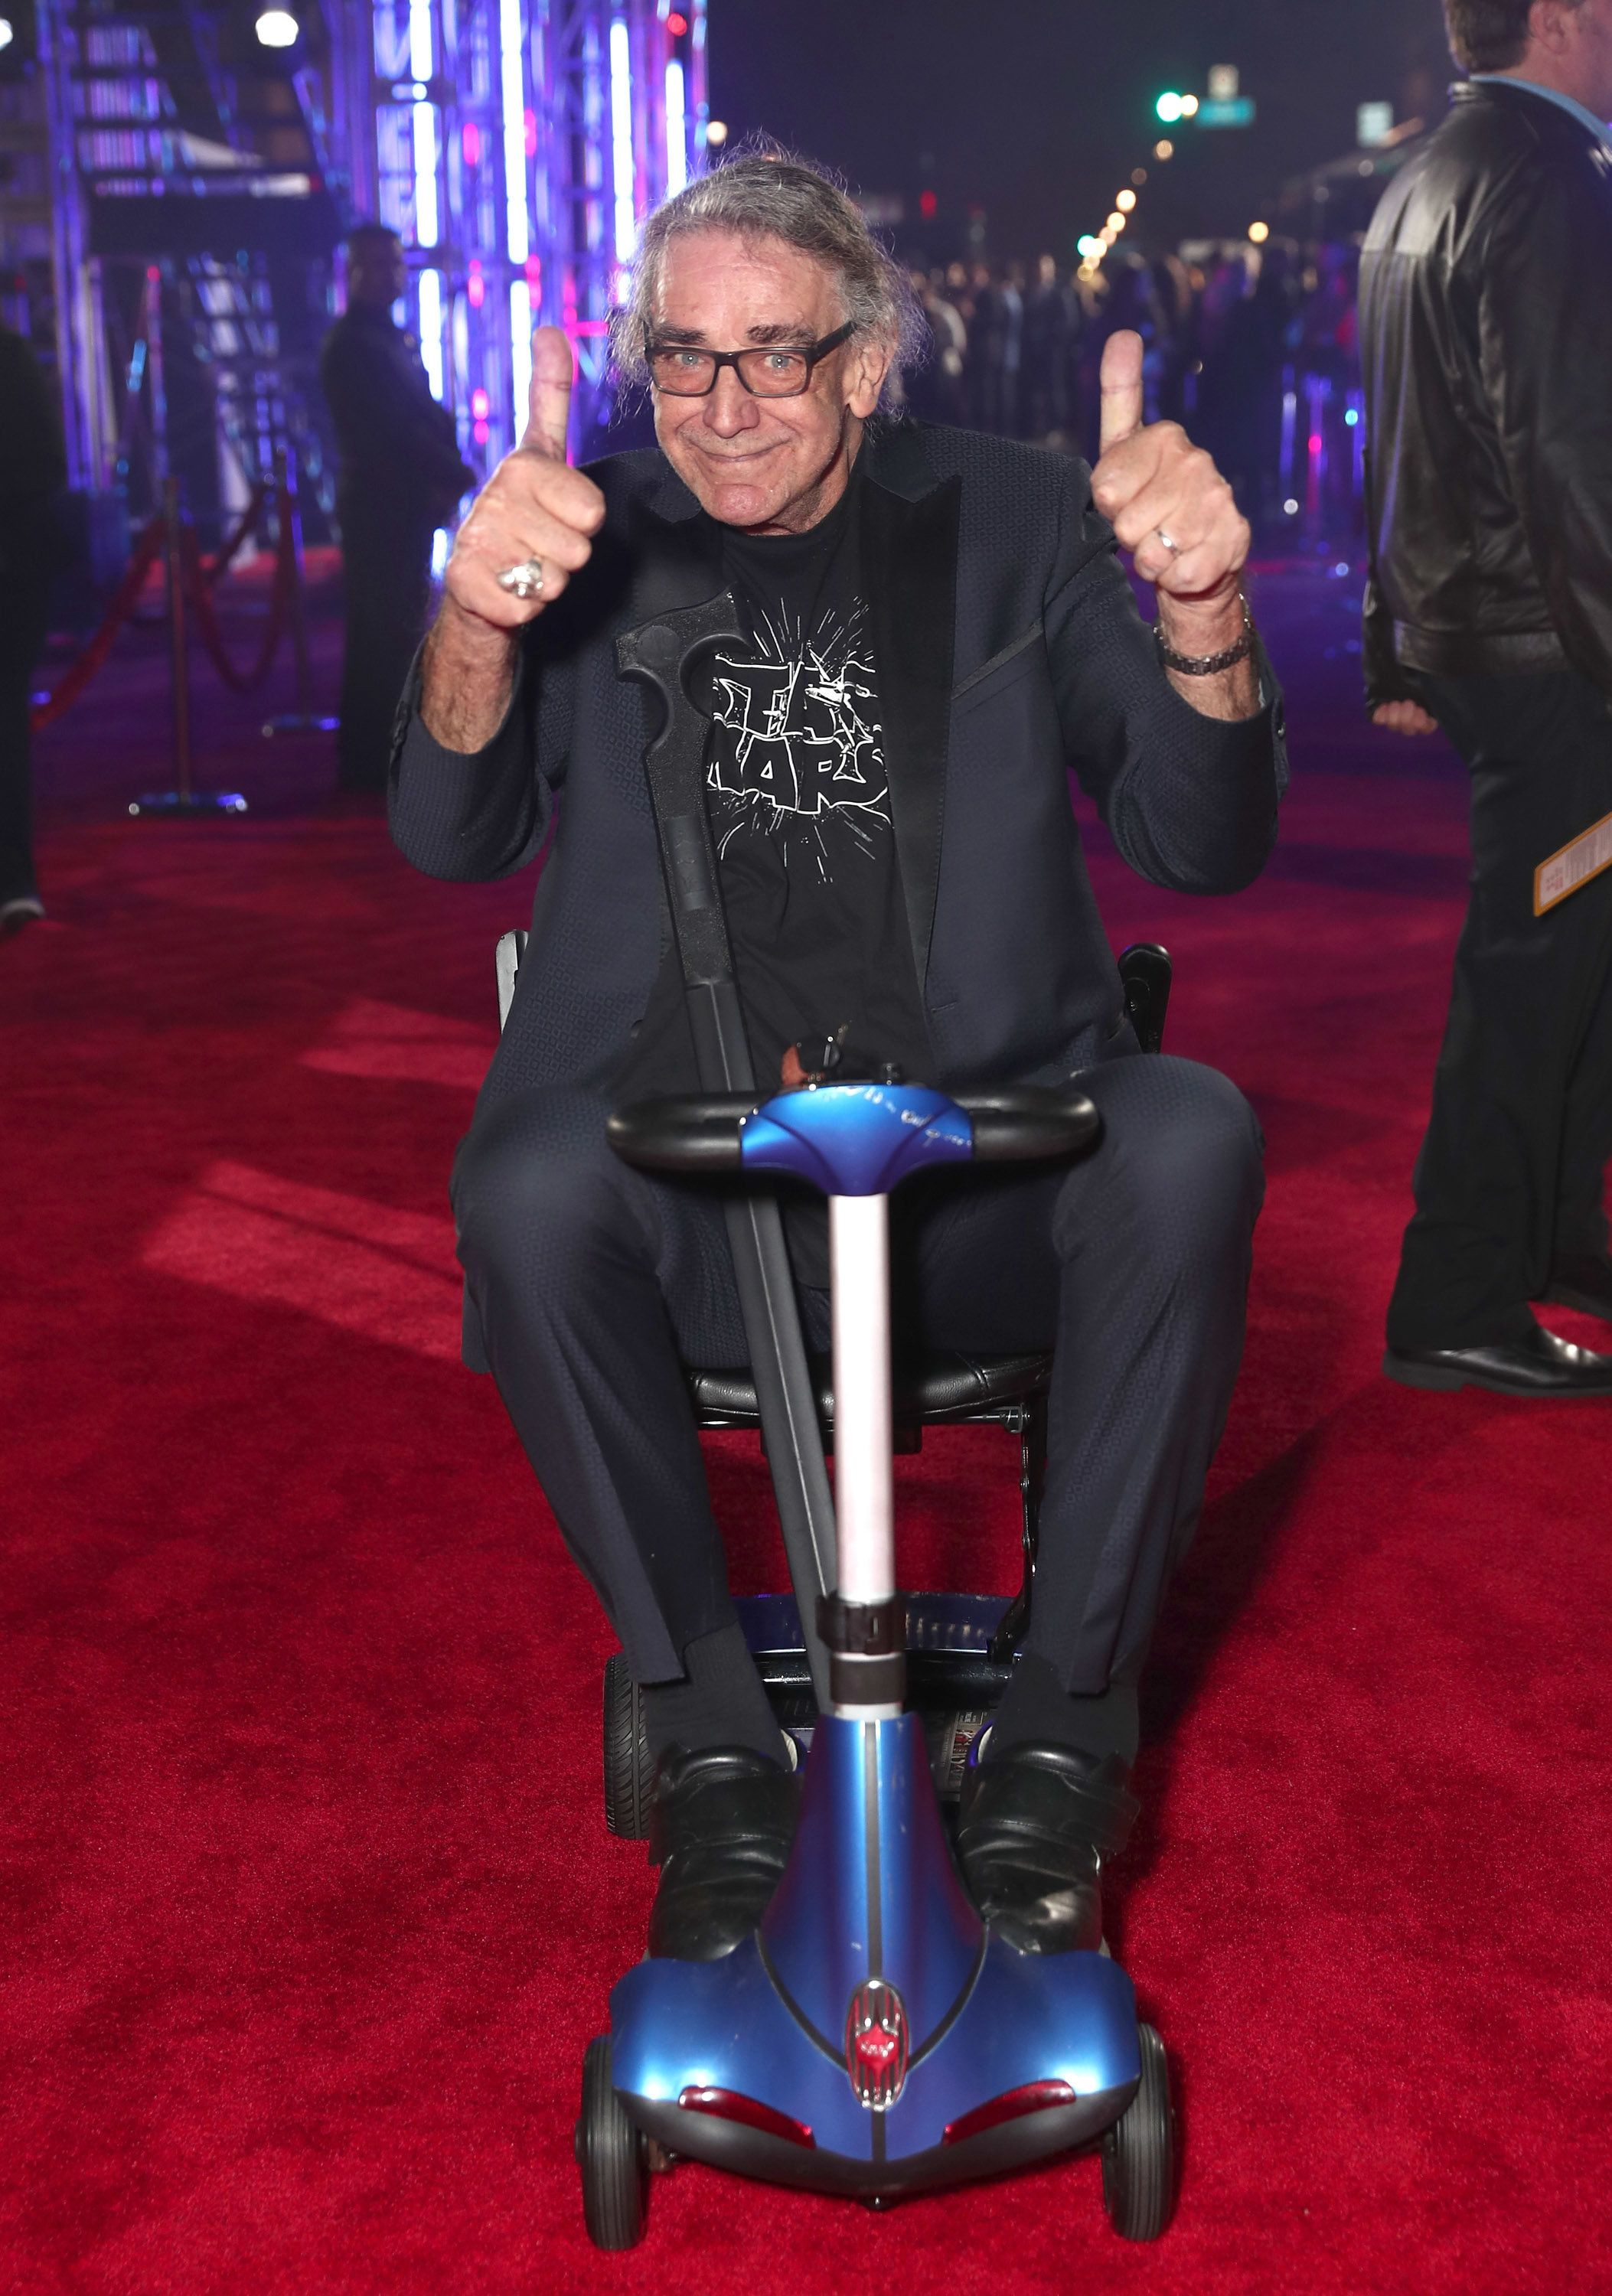 'Star Wars' Actor Peter Mayhew Undergoes Spinal Surgery To Improve